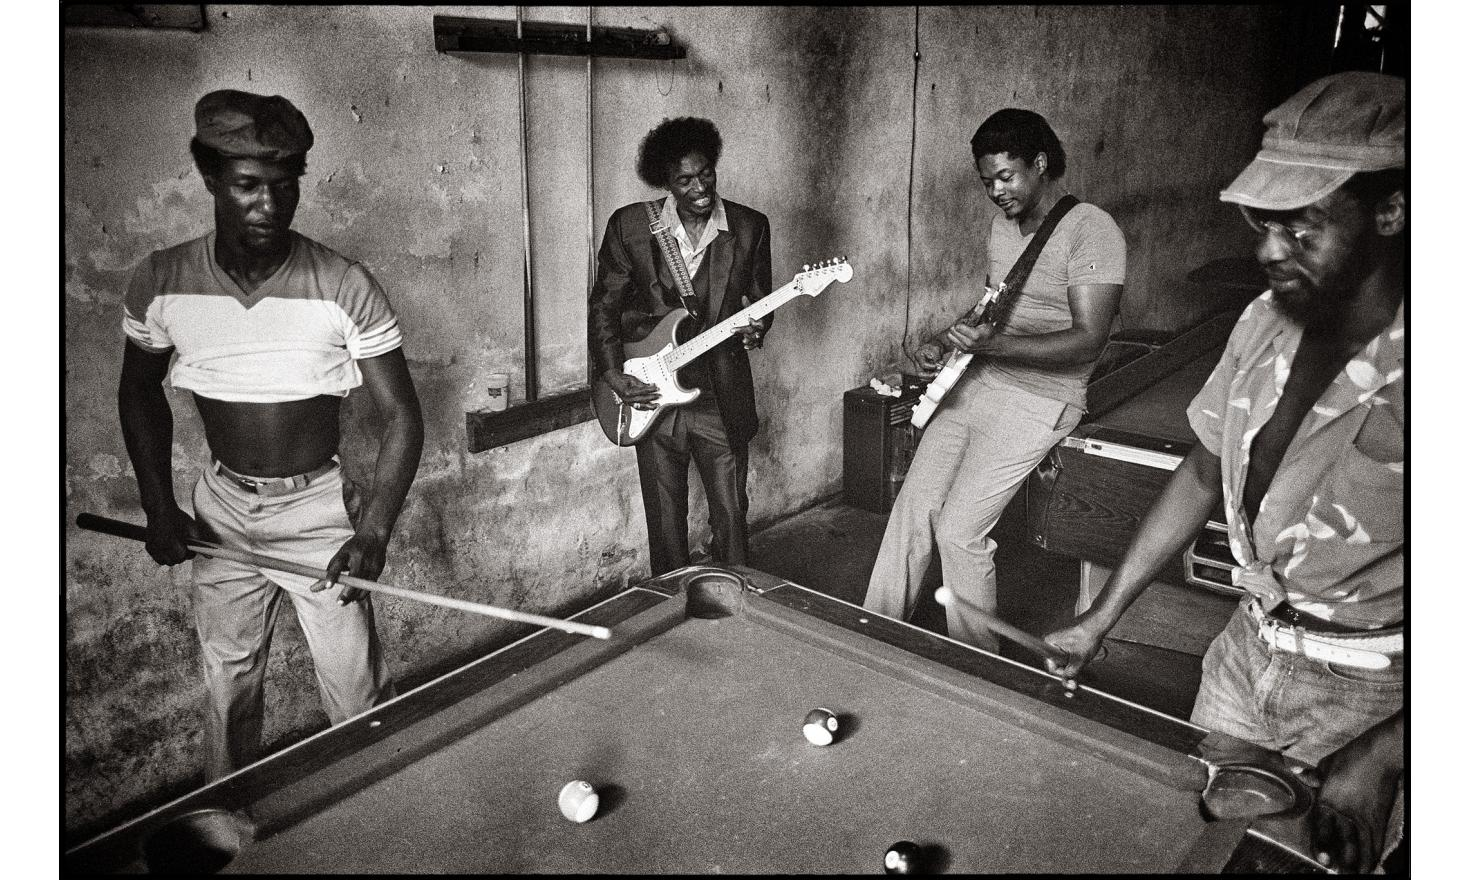 Blues music is born in the Mississipi River Delta amid cotton fields and poverty - 1986.